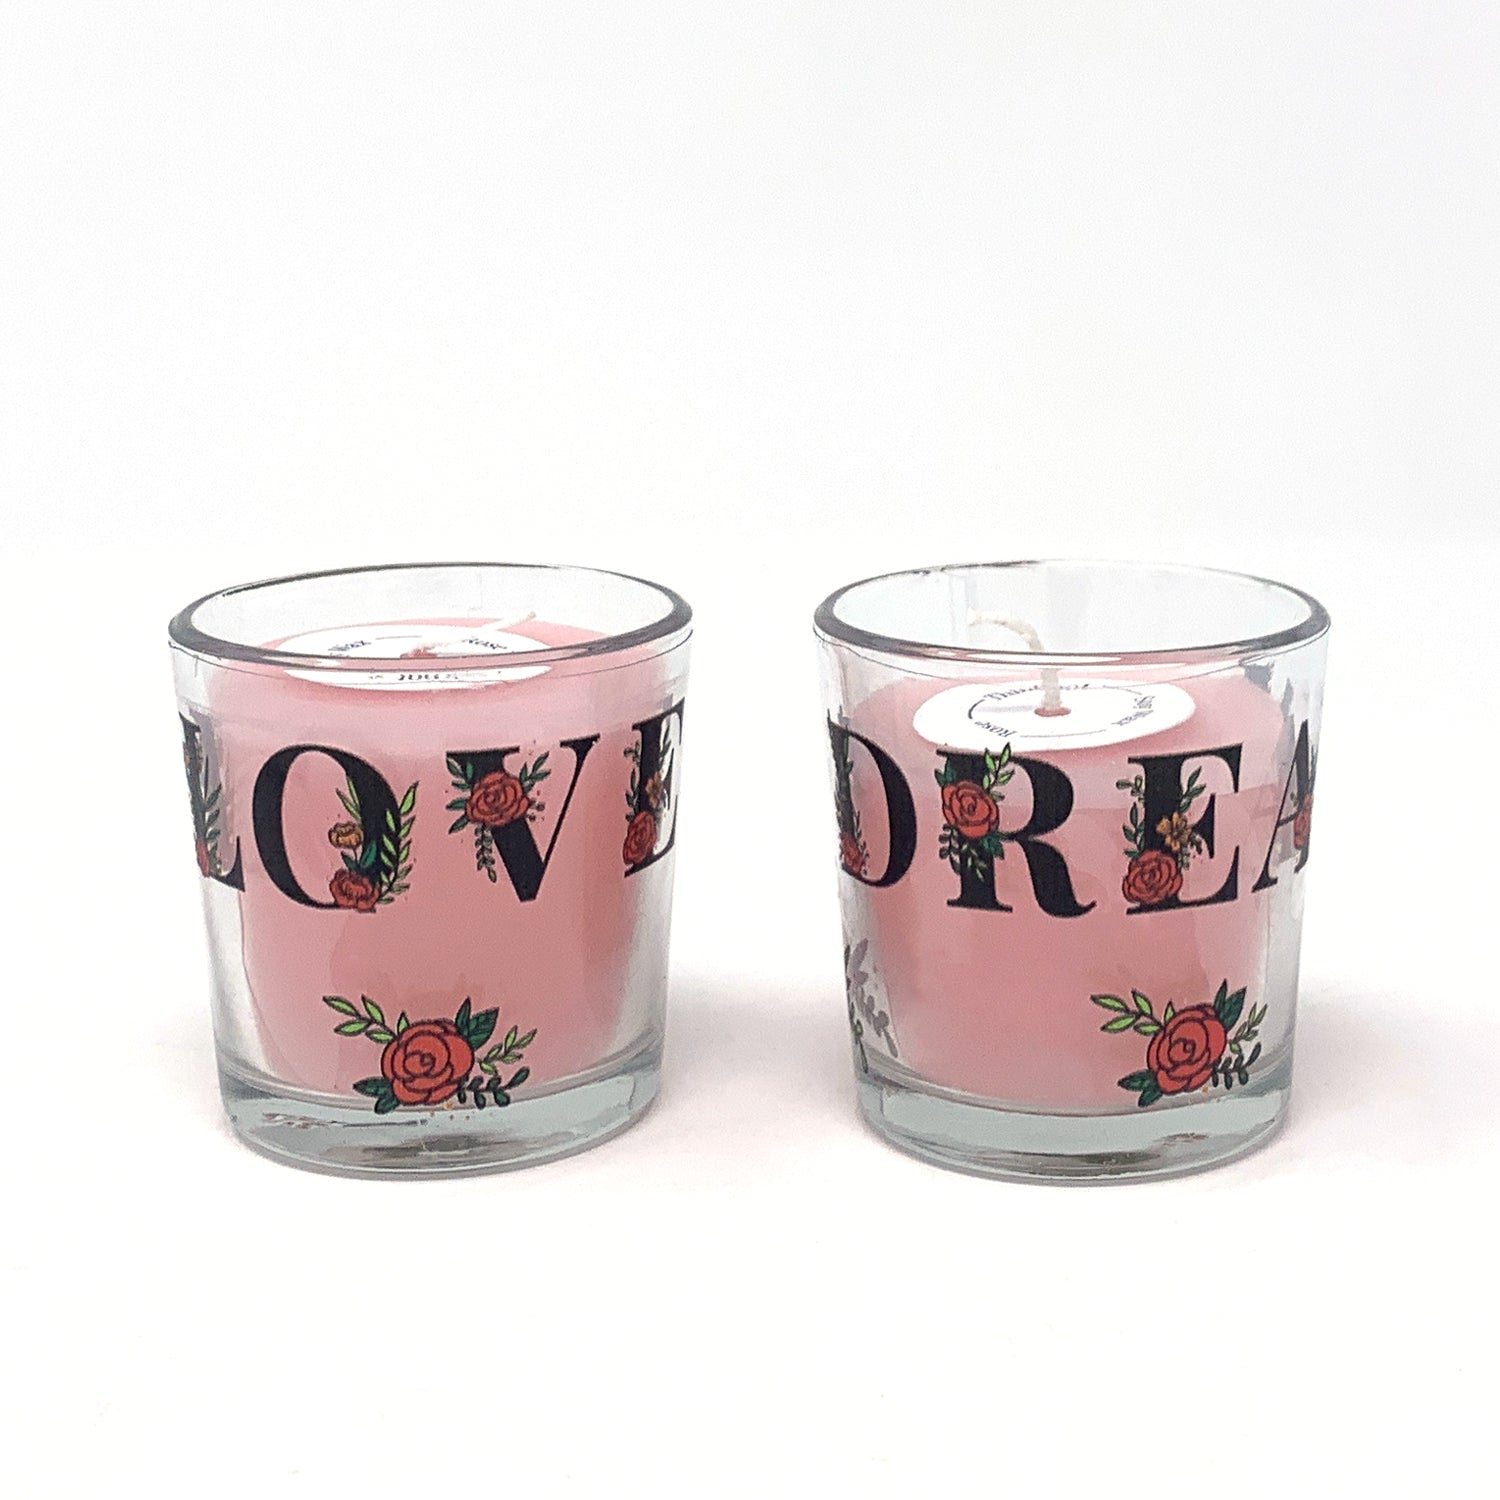 Rose Petals Soy Wax Votive Glass Candles (Set of 2)